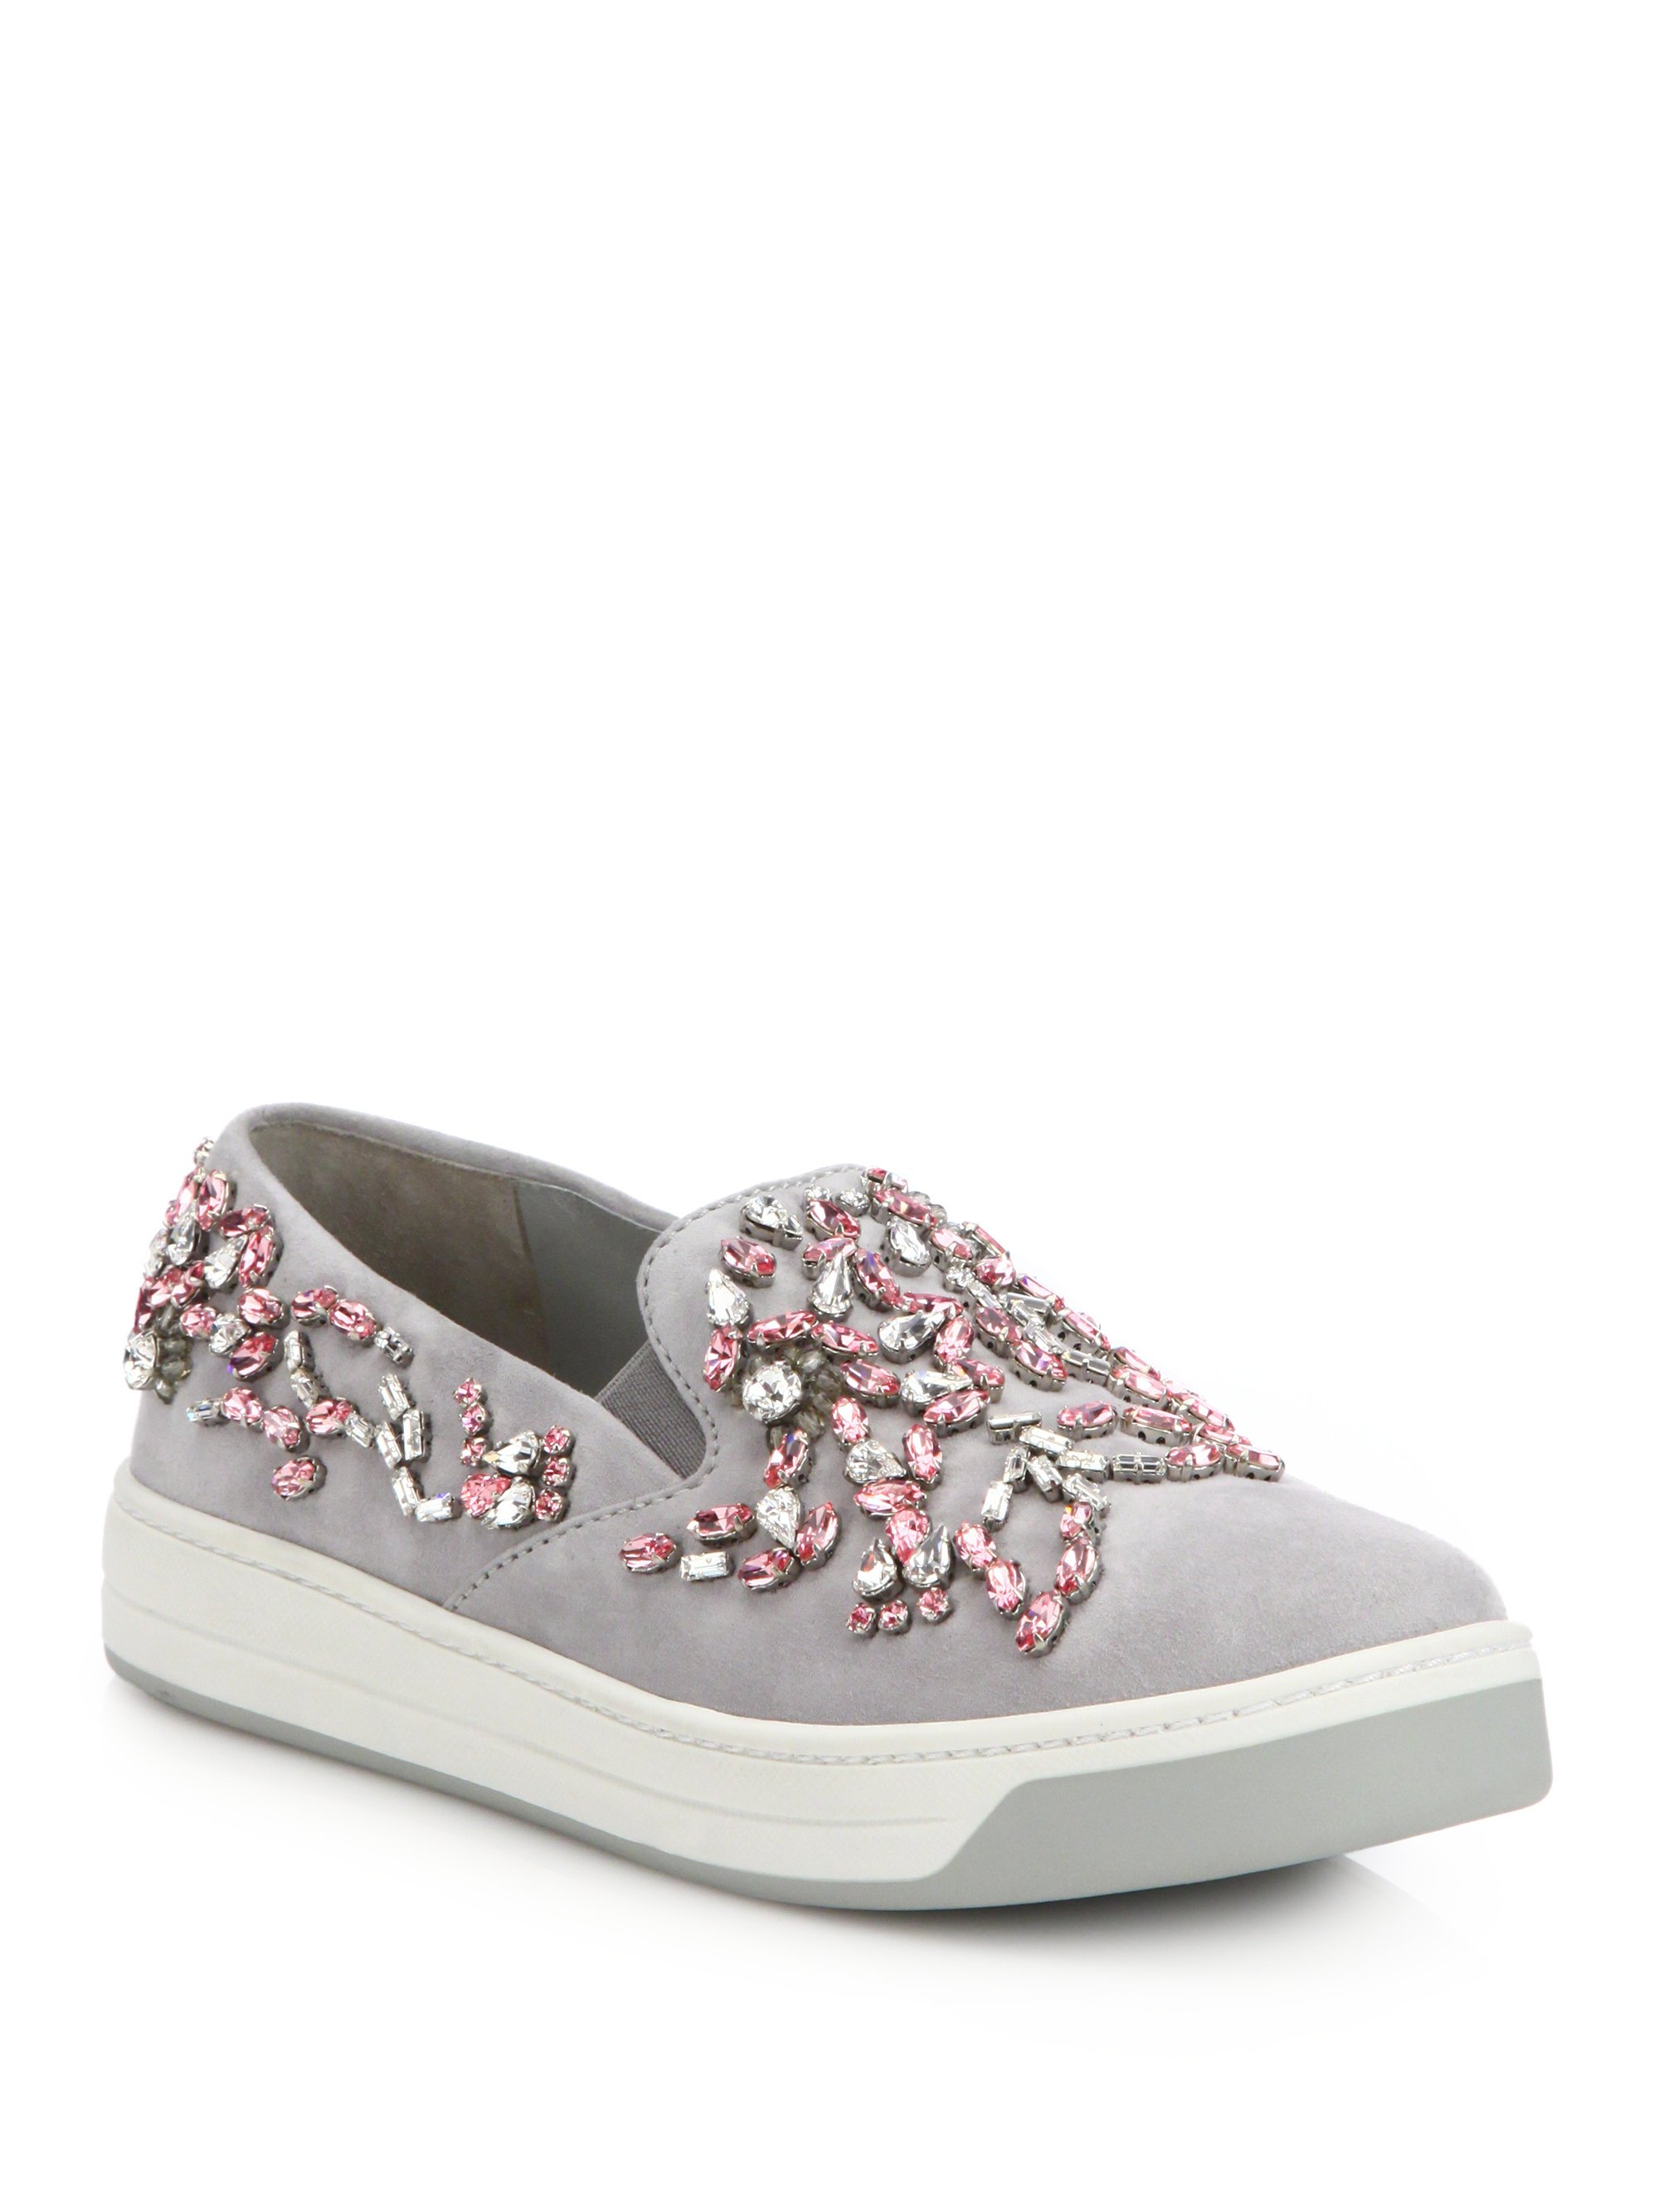 Grey Suede Womens Shoes